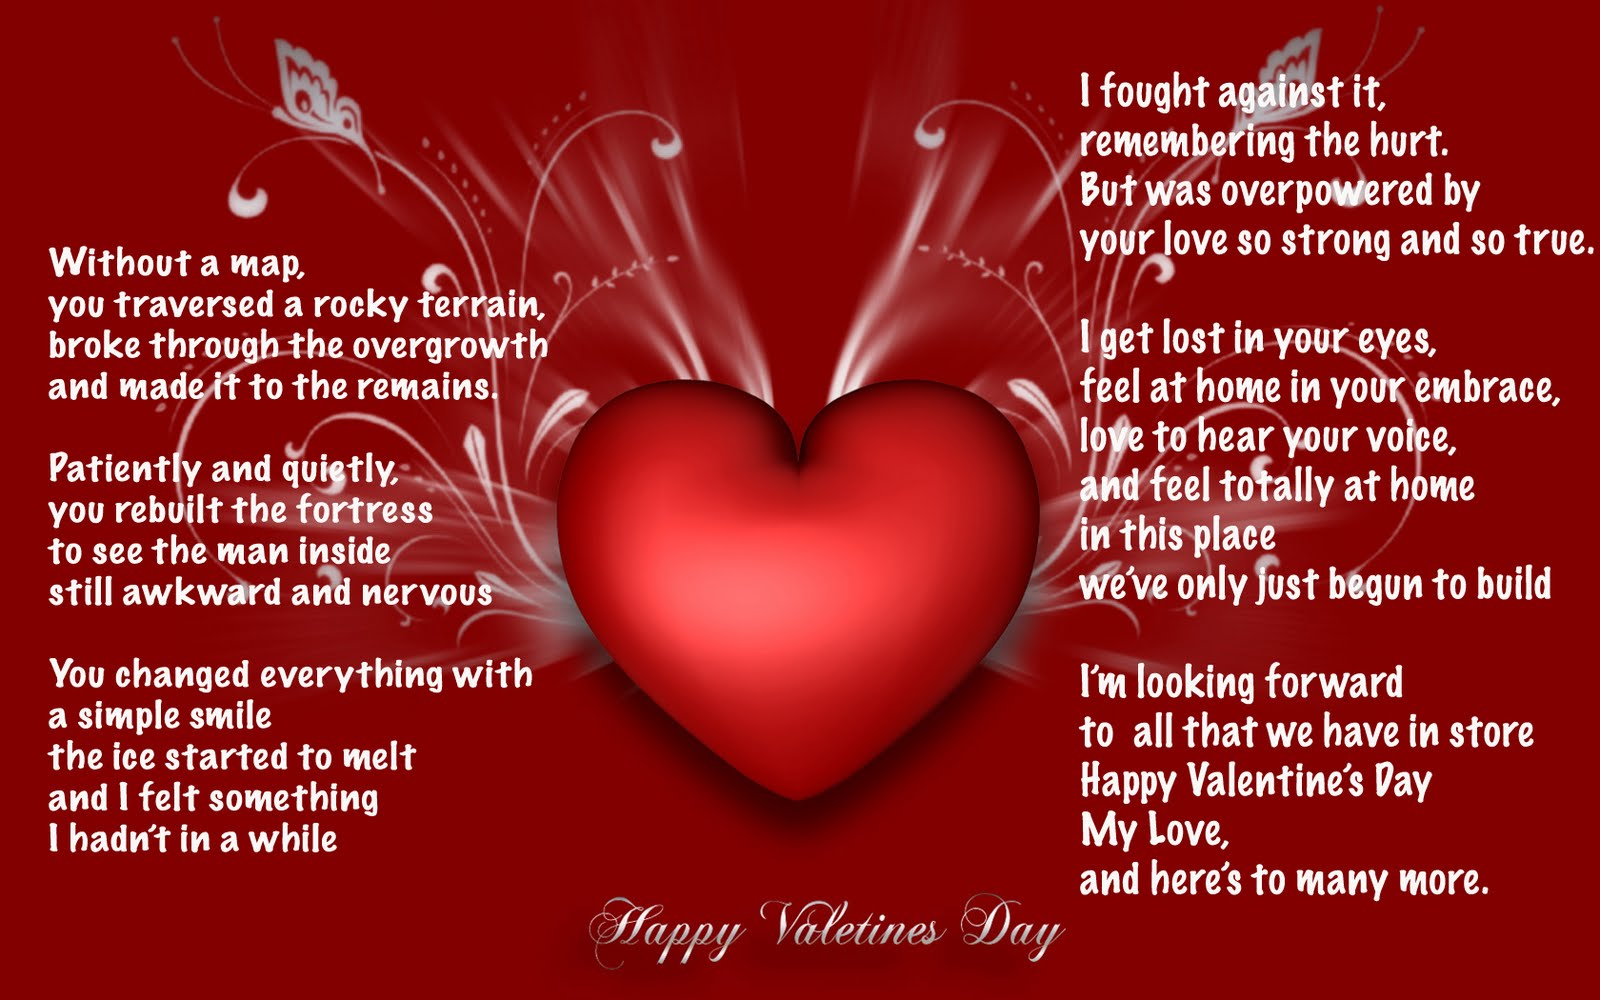 Valentines Day Quotes 2014 New Latest Pictures. 1600 x 1000.Best Valentine's Day Quotes For Him